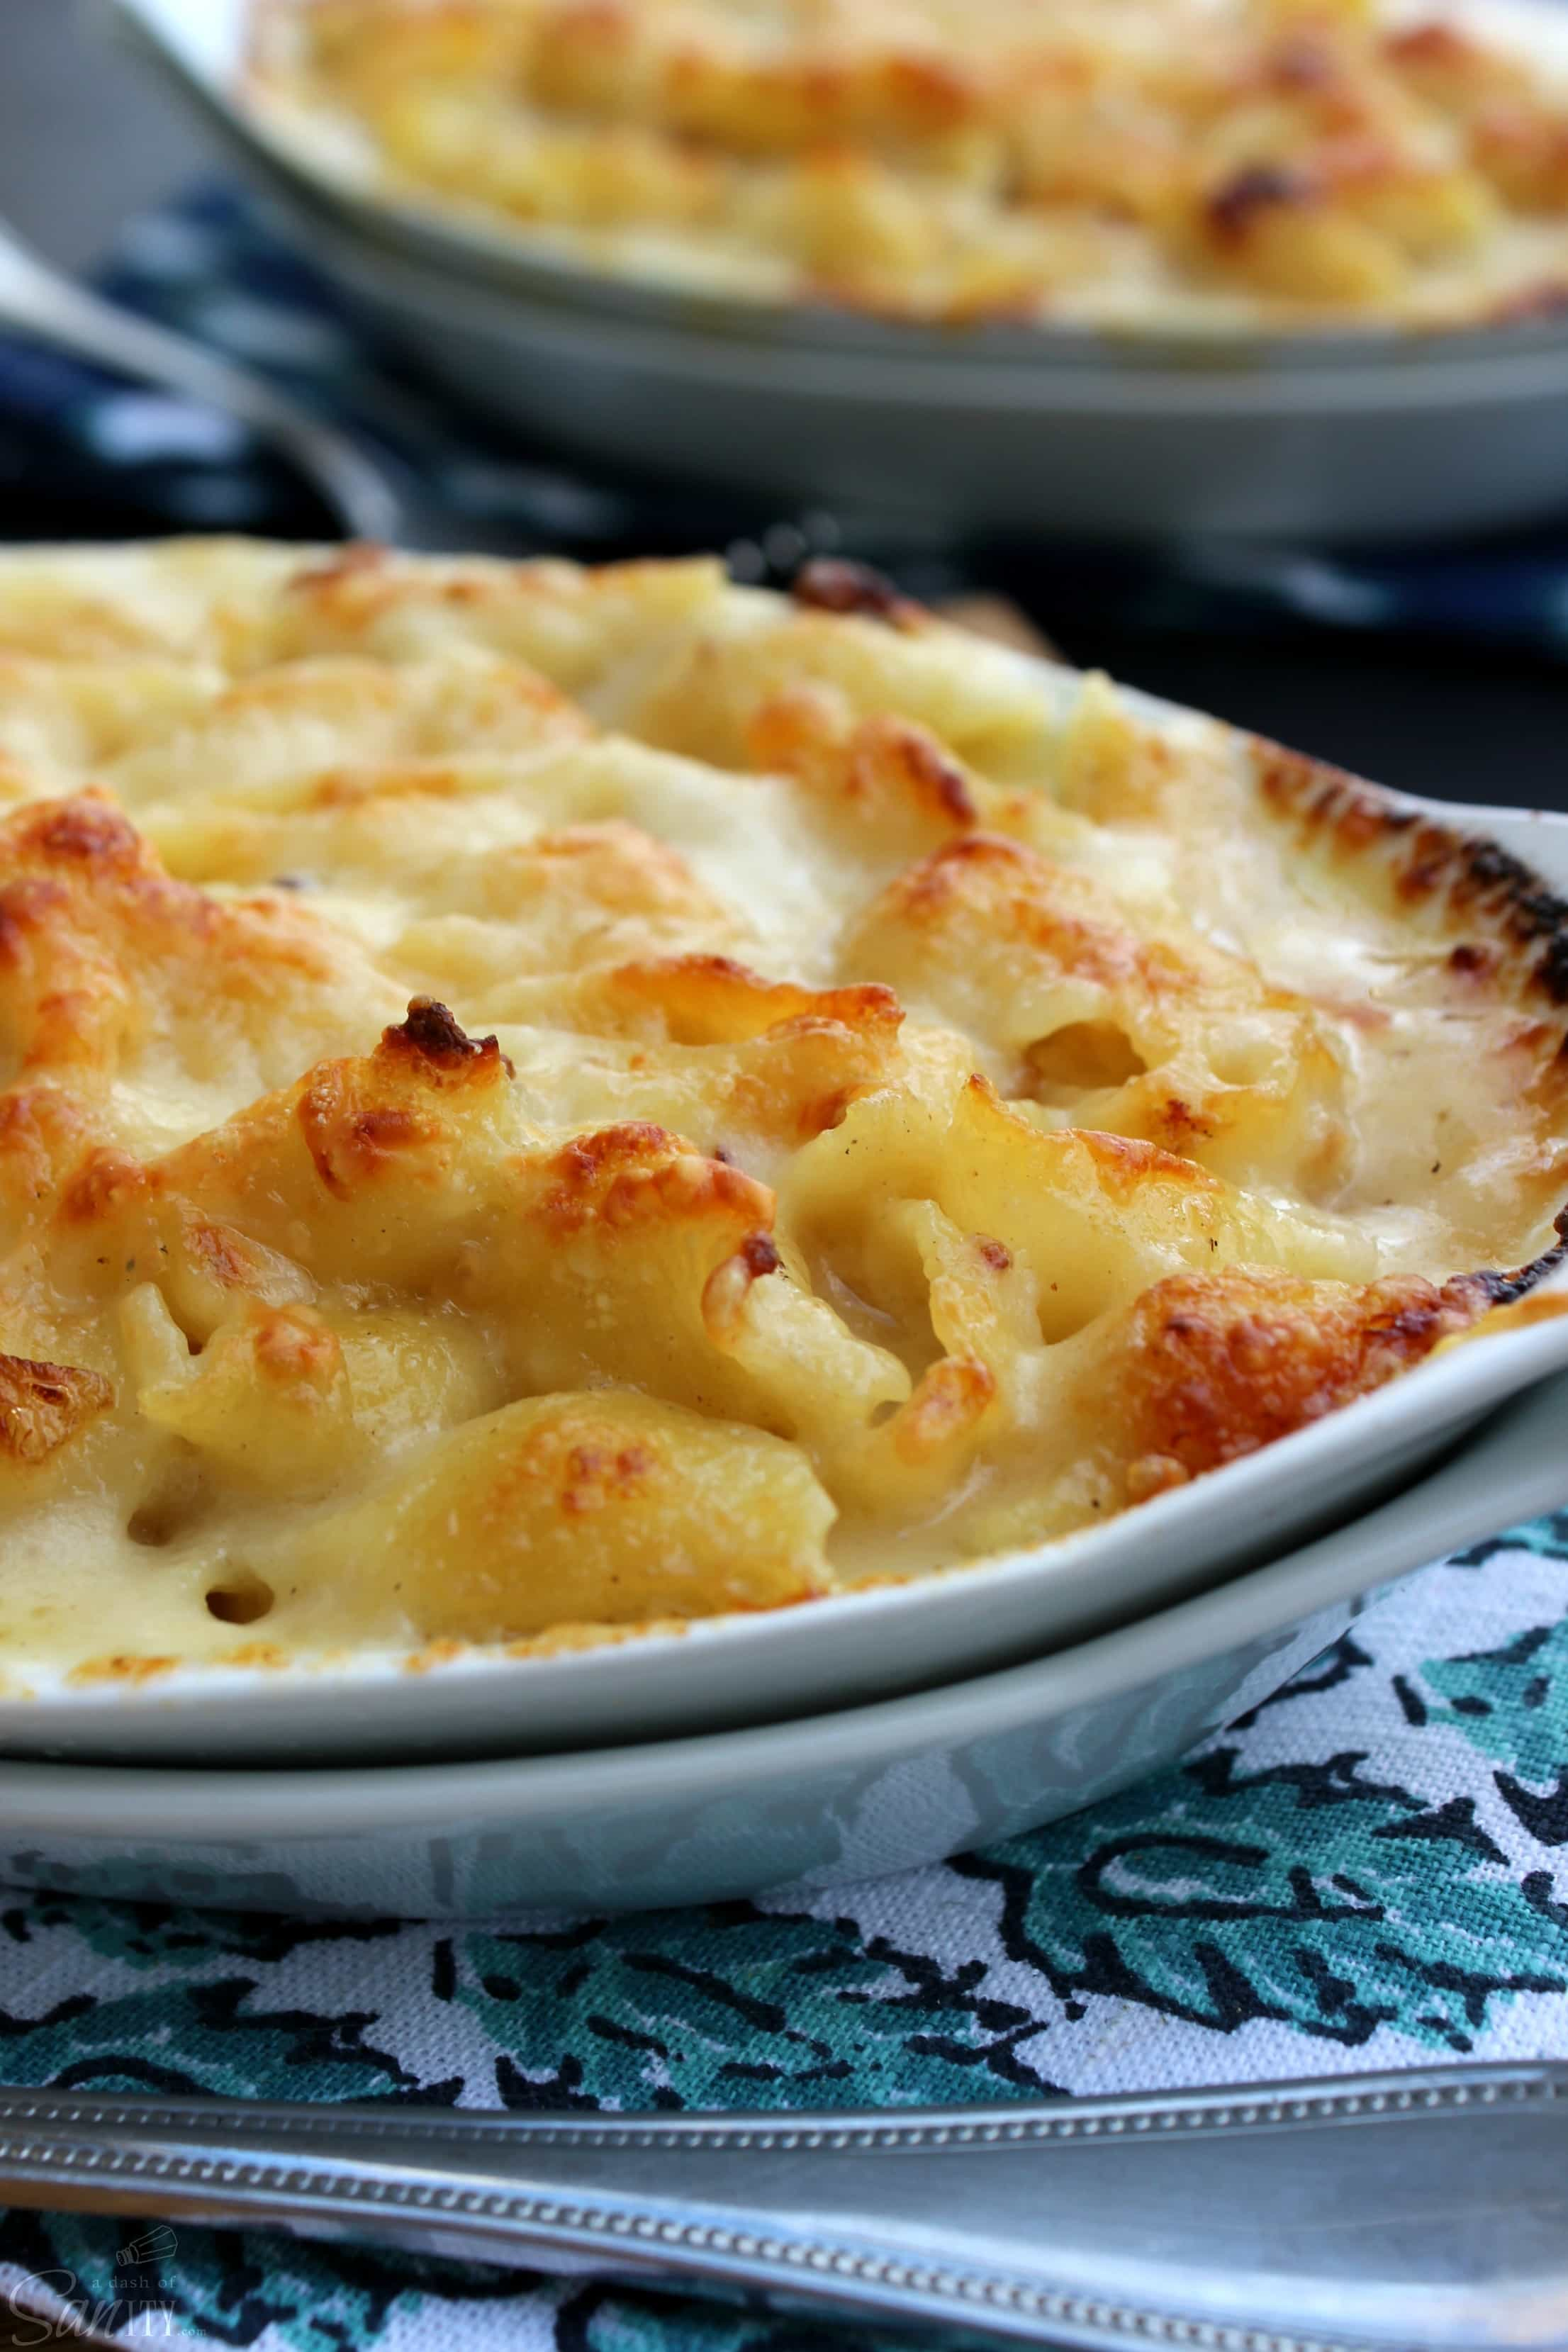 Scalloped Mac & Cheese is a creamy, rich, and delish pasta dish that is easy to make & ready in less than 45-minutes. Time to move over Scalloped Potatoes.